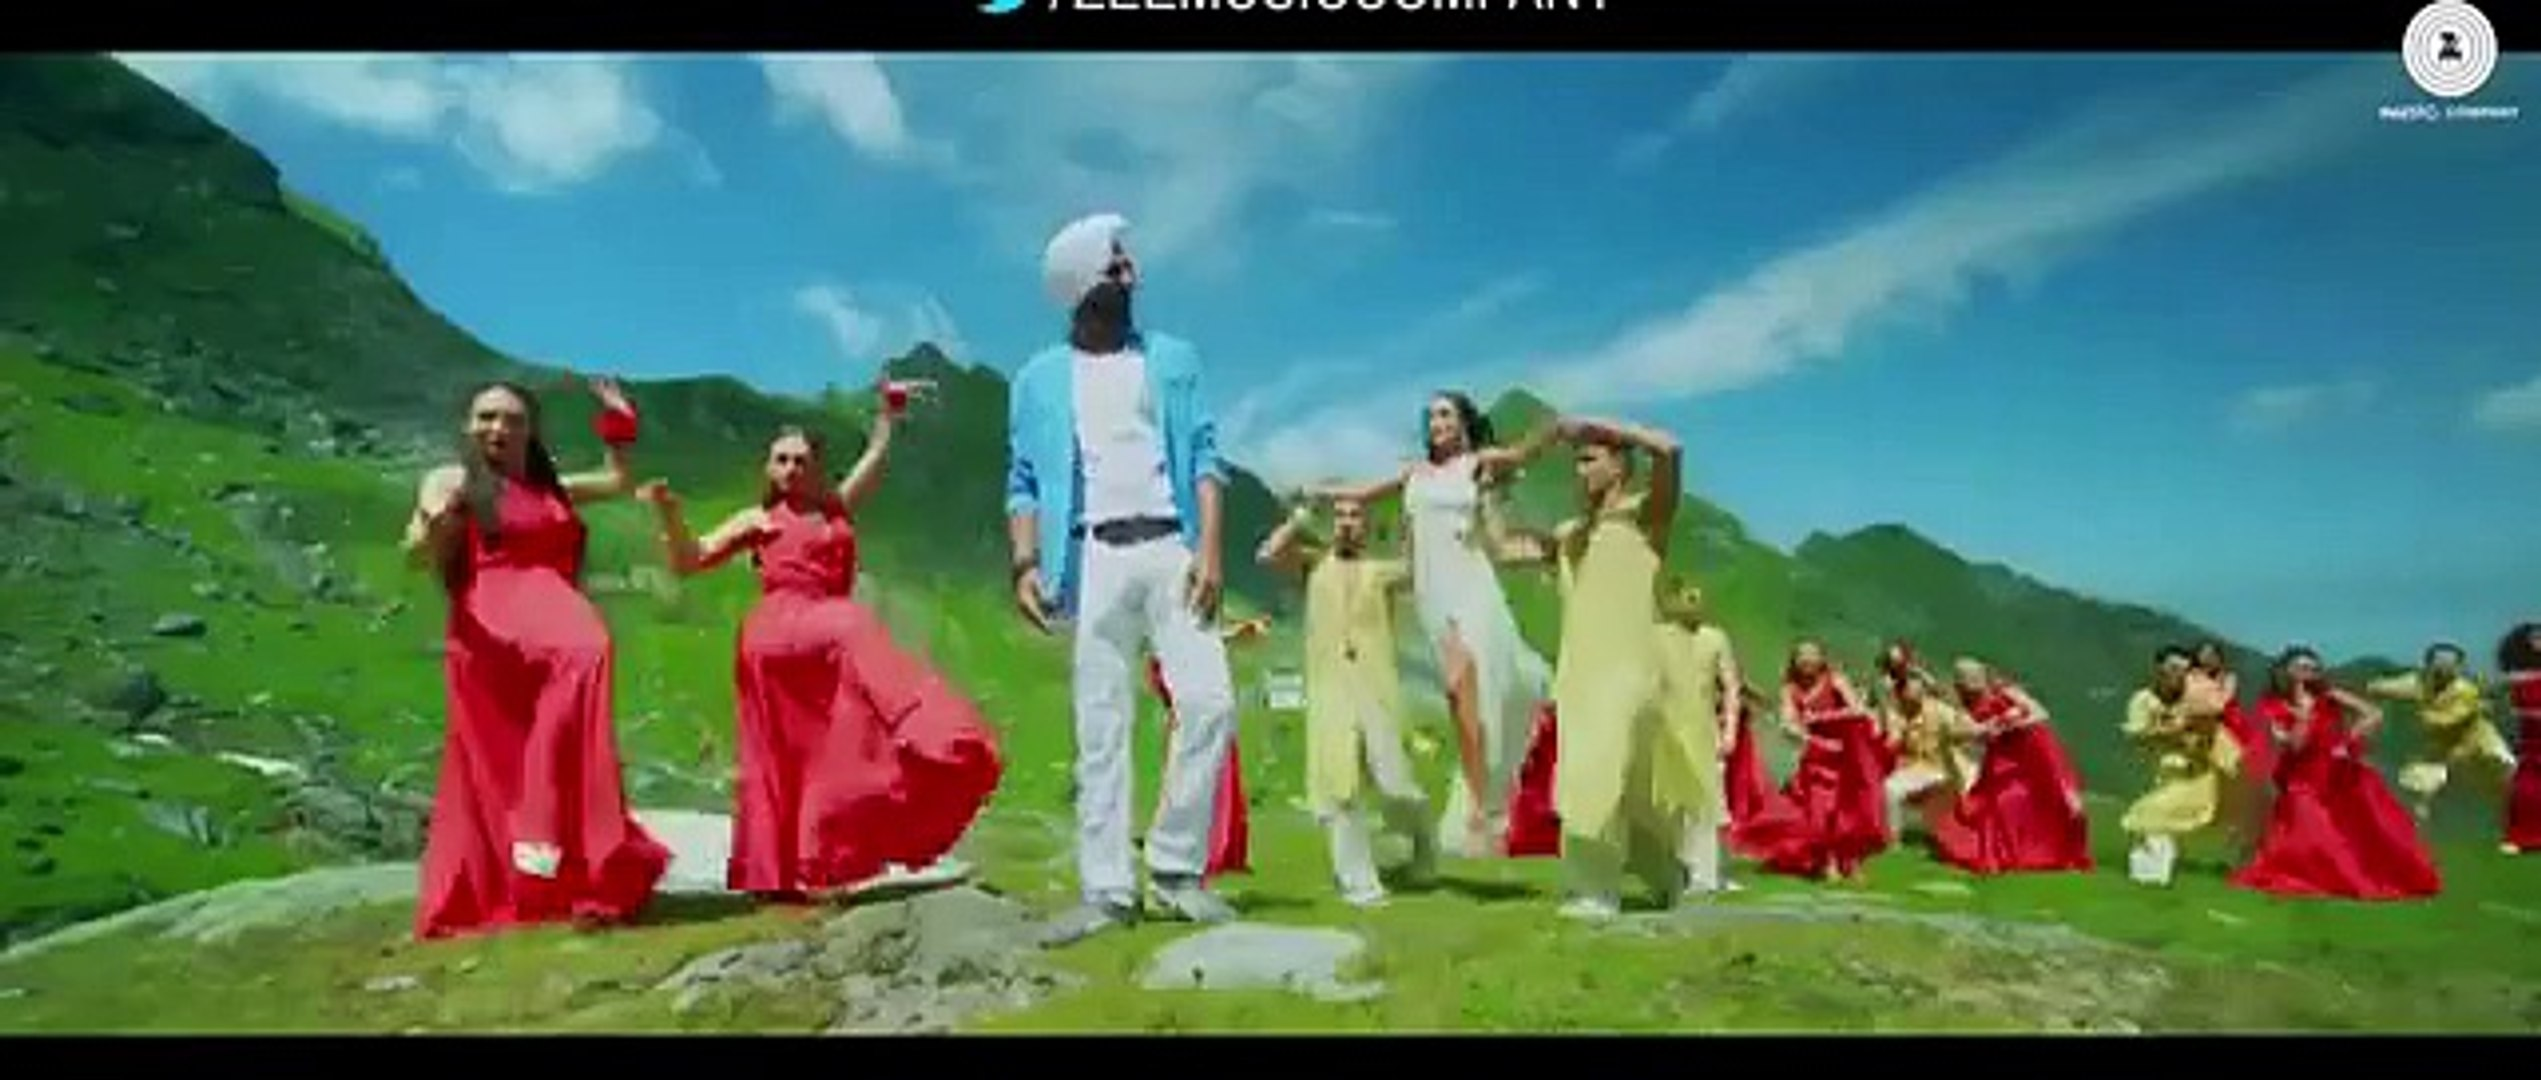 Dil Kare Chu Che - Official Video 2015 HD Music by Meet Bros. ft Paps - Singh Is Bliing - Akshay Kum